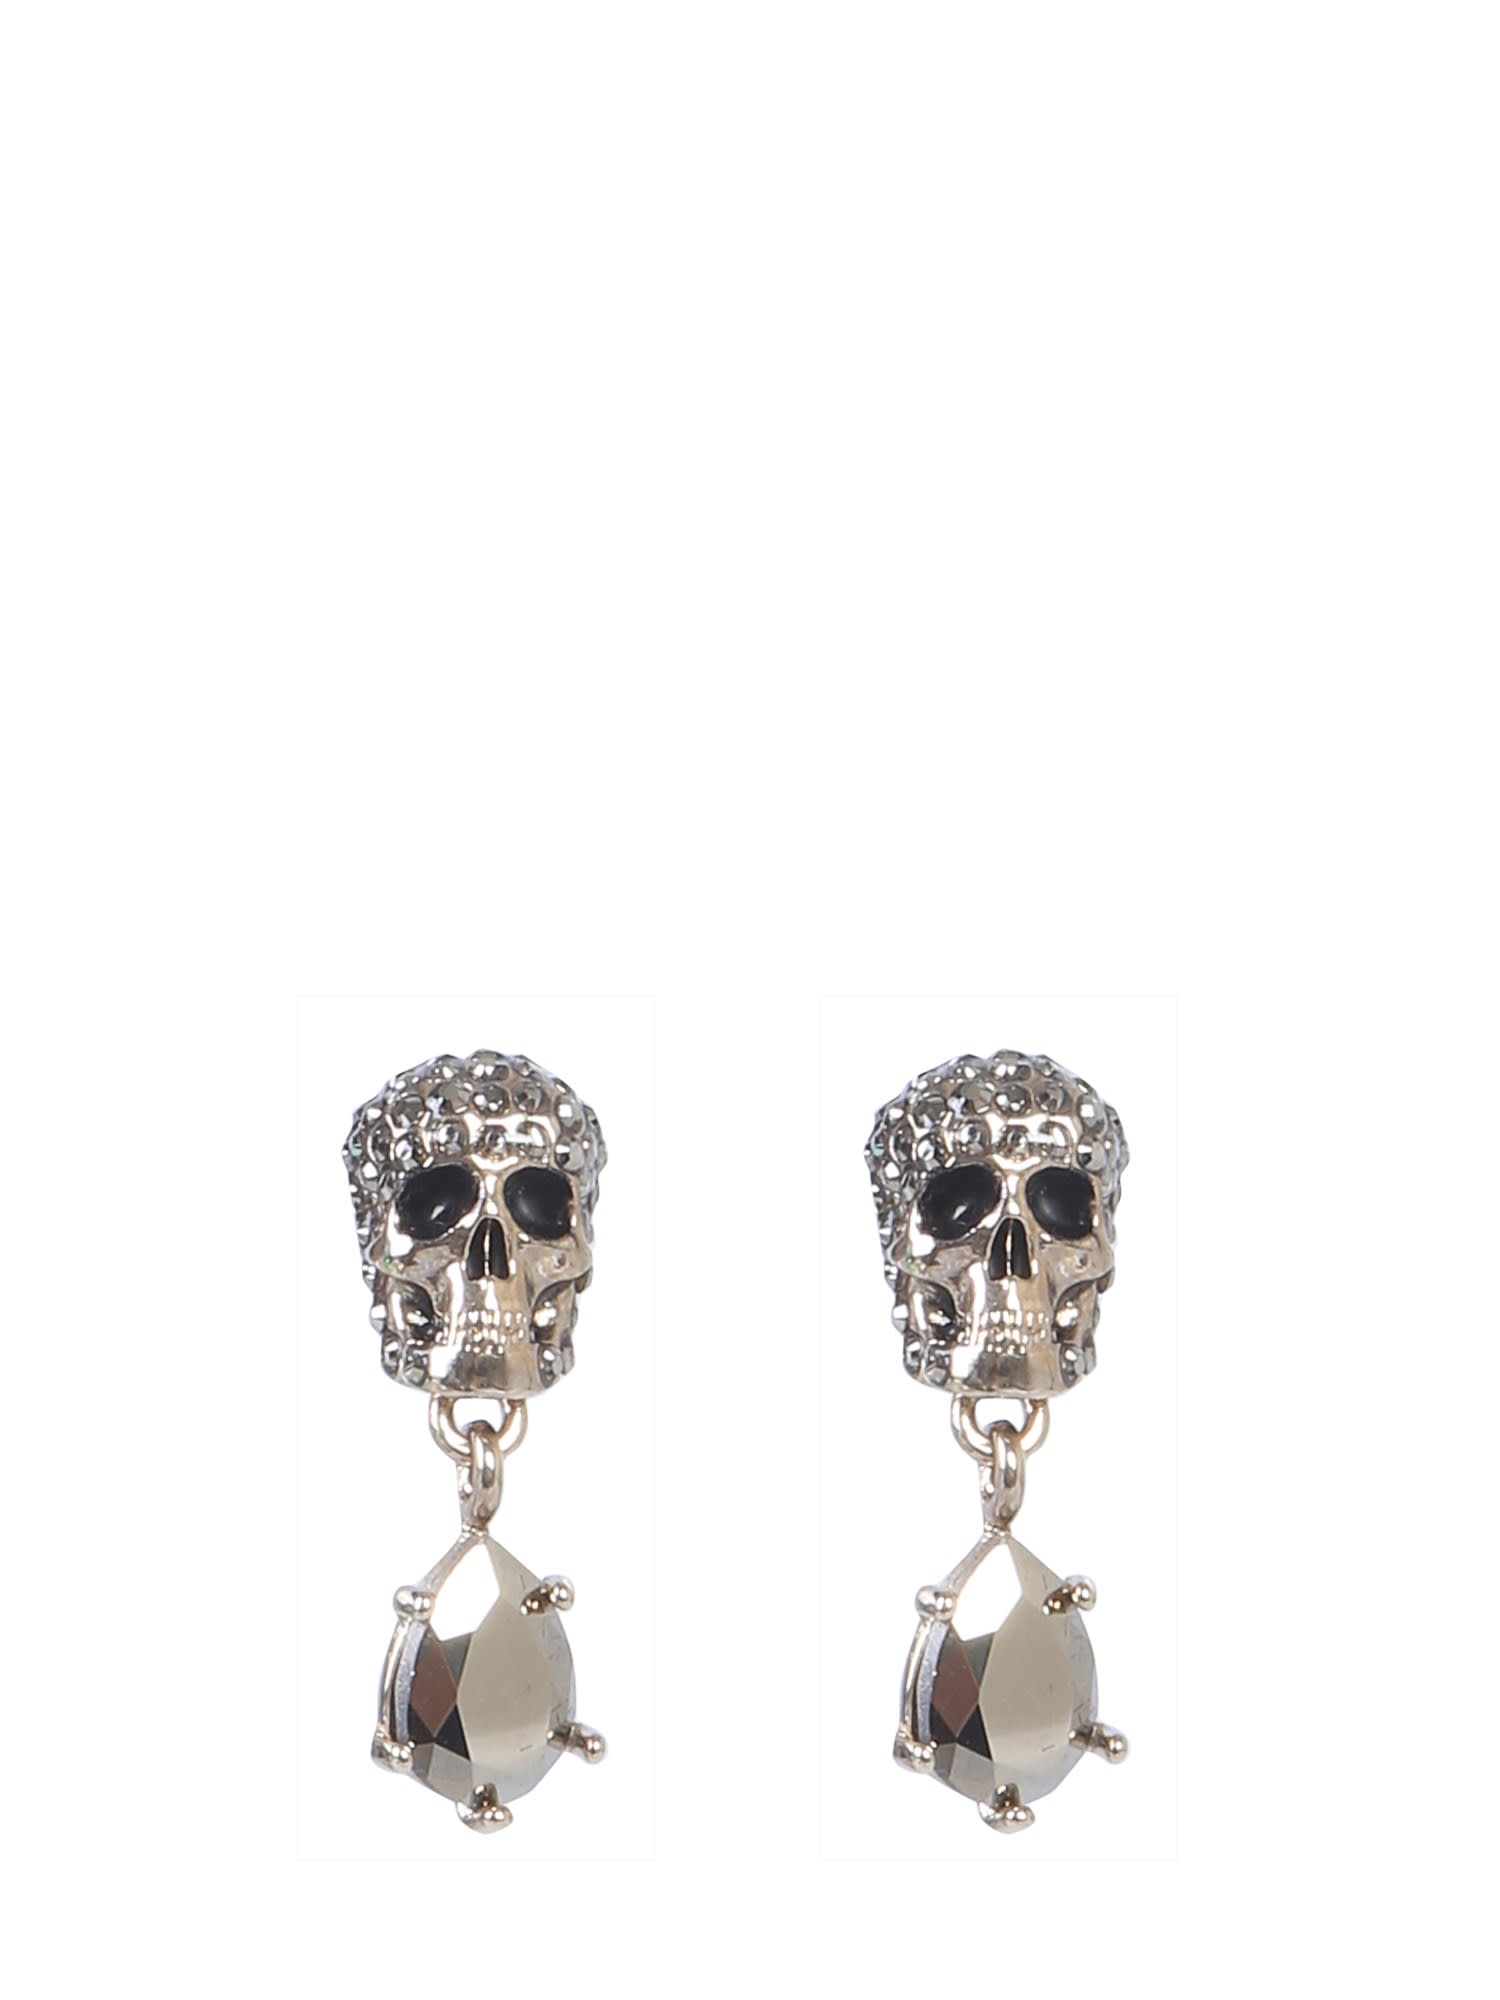 Alexander McQueen Skull Earrings With Stones